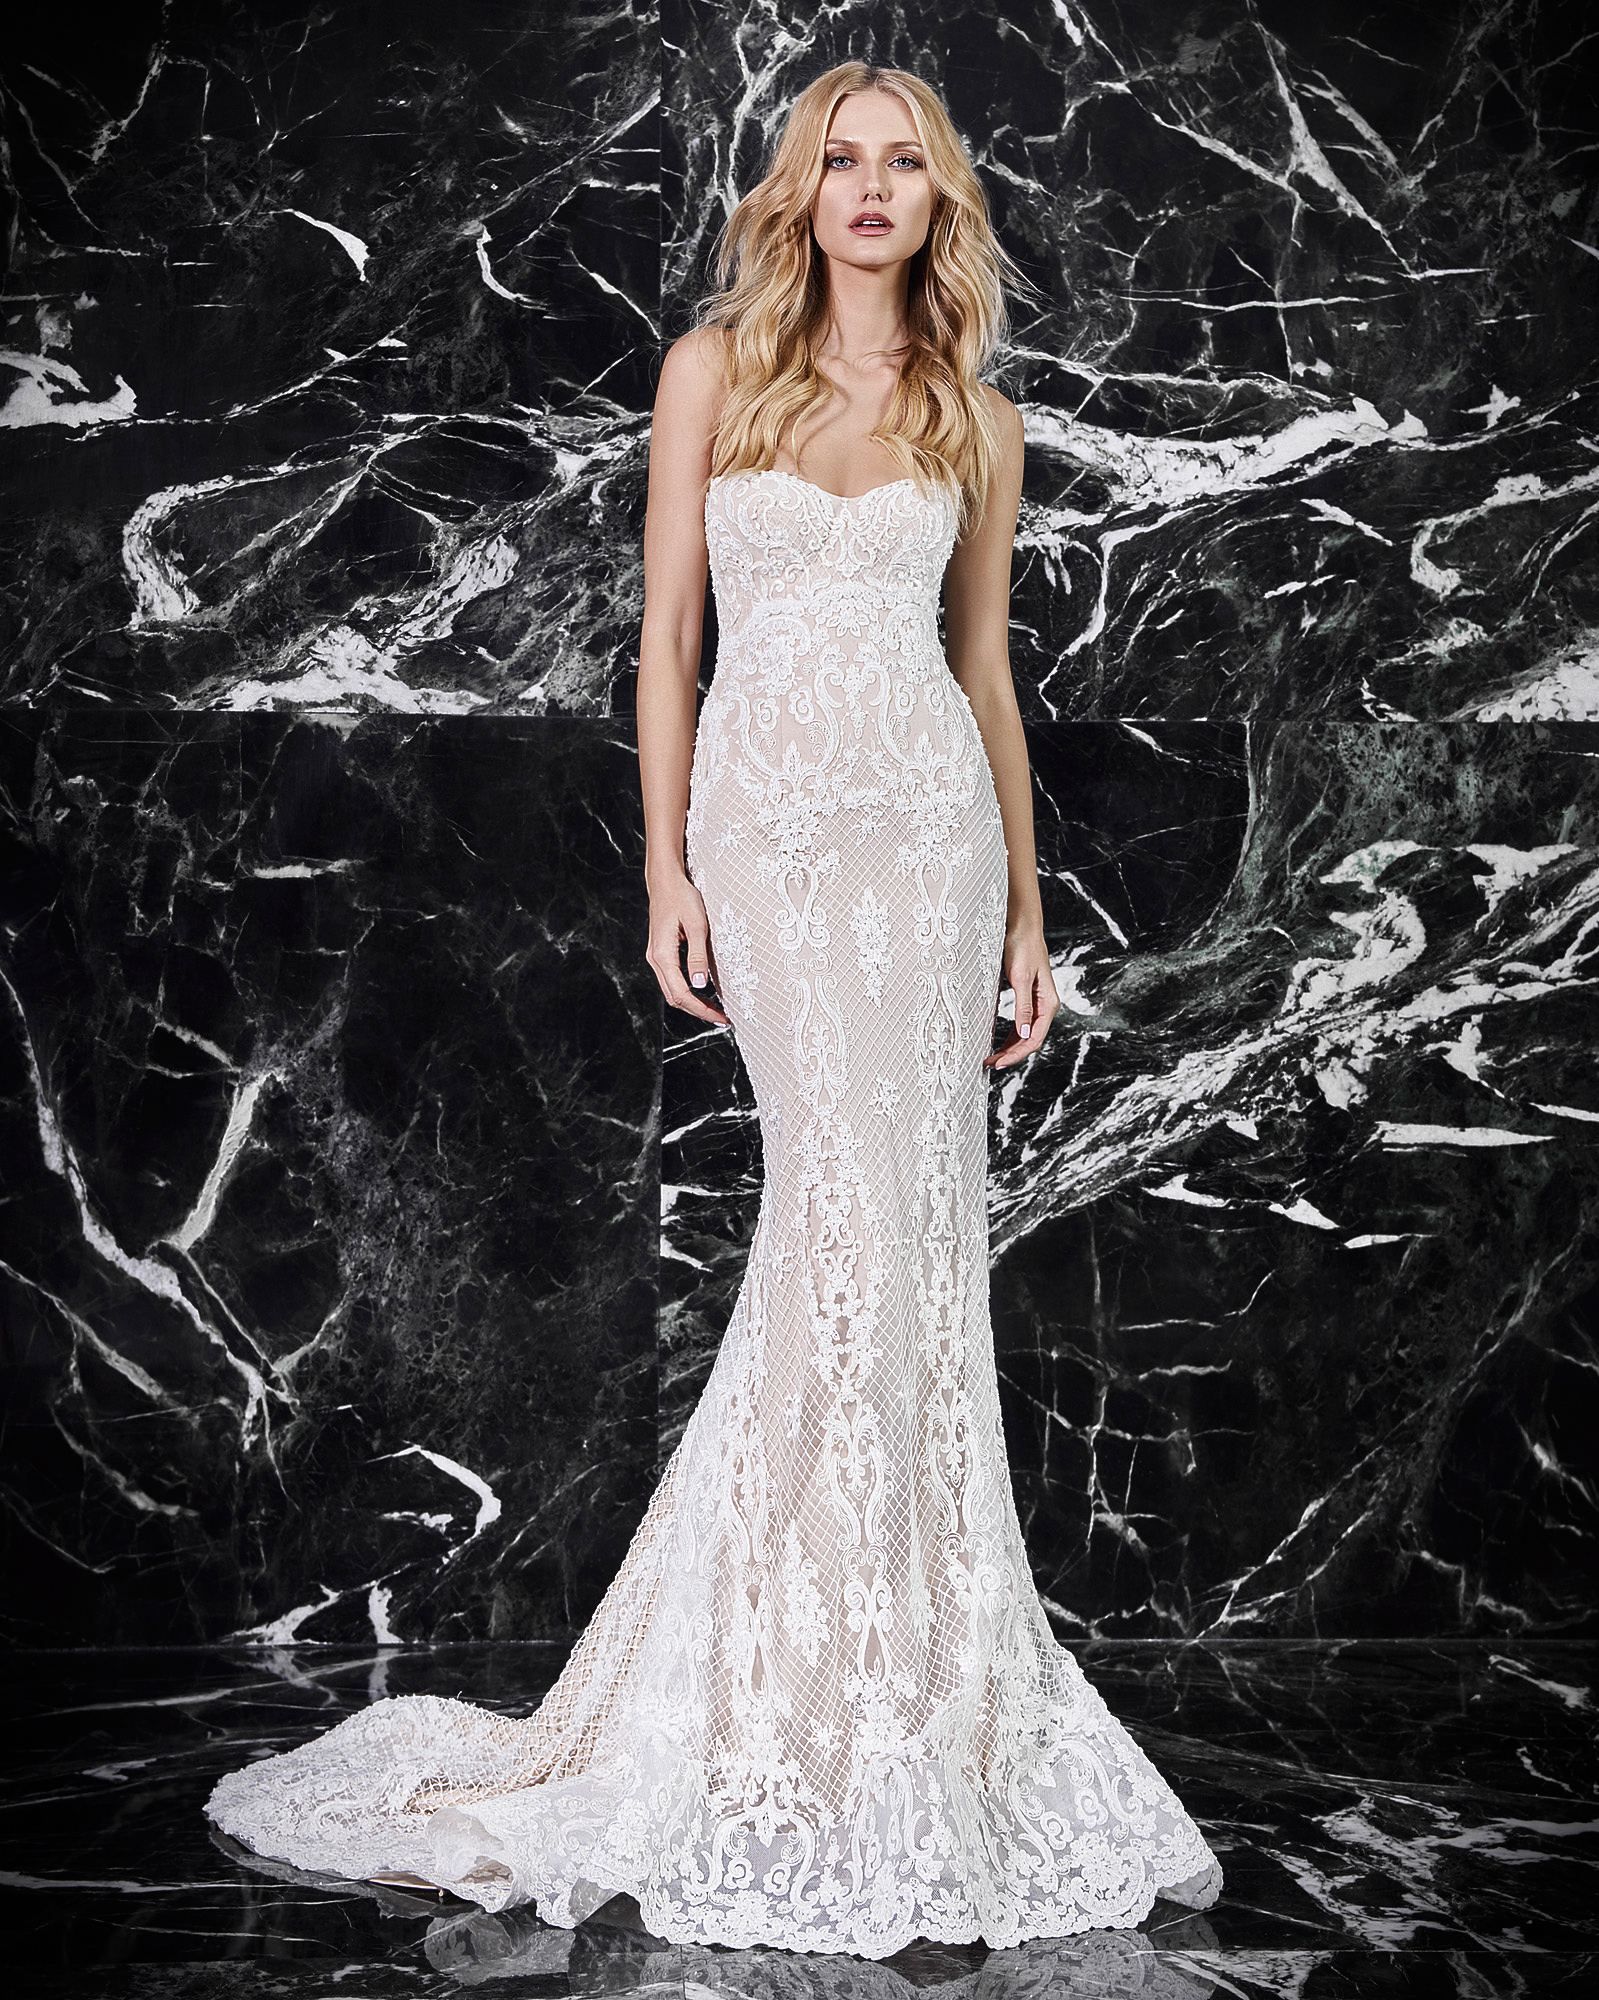 victoria kyriakides strapless wedding dress spring 2018